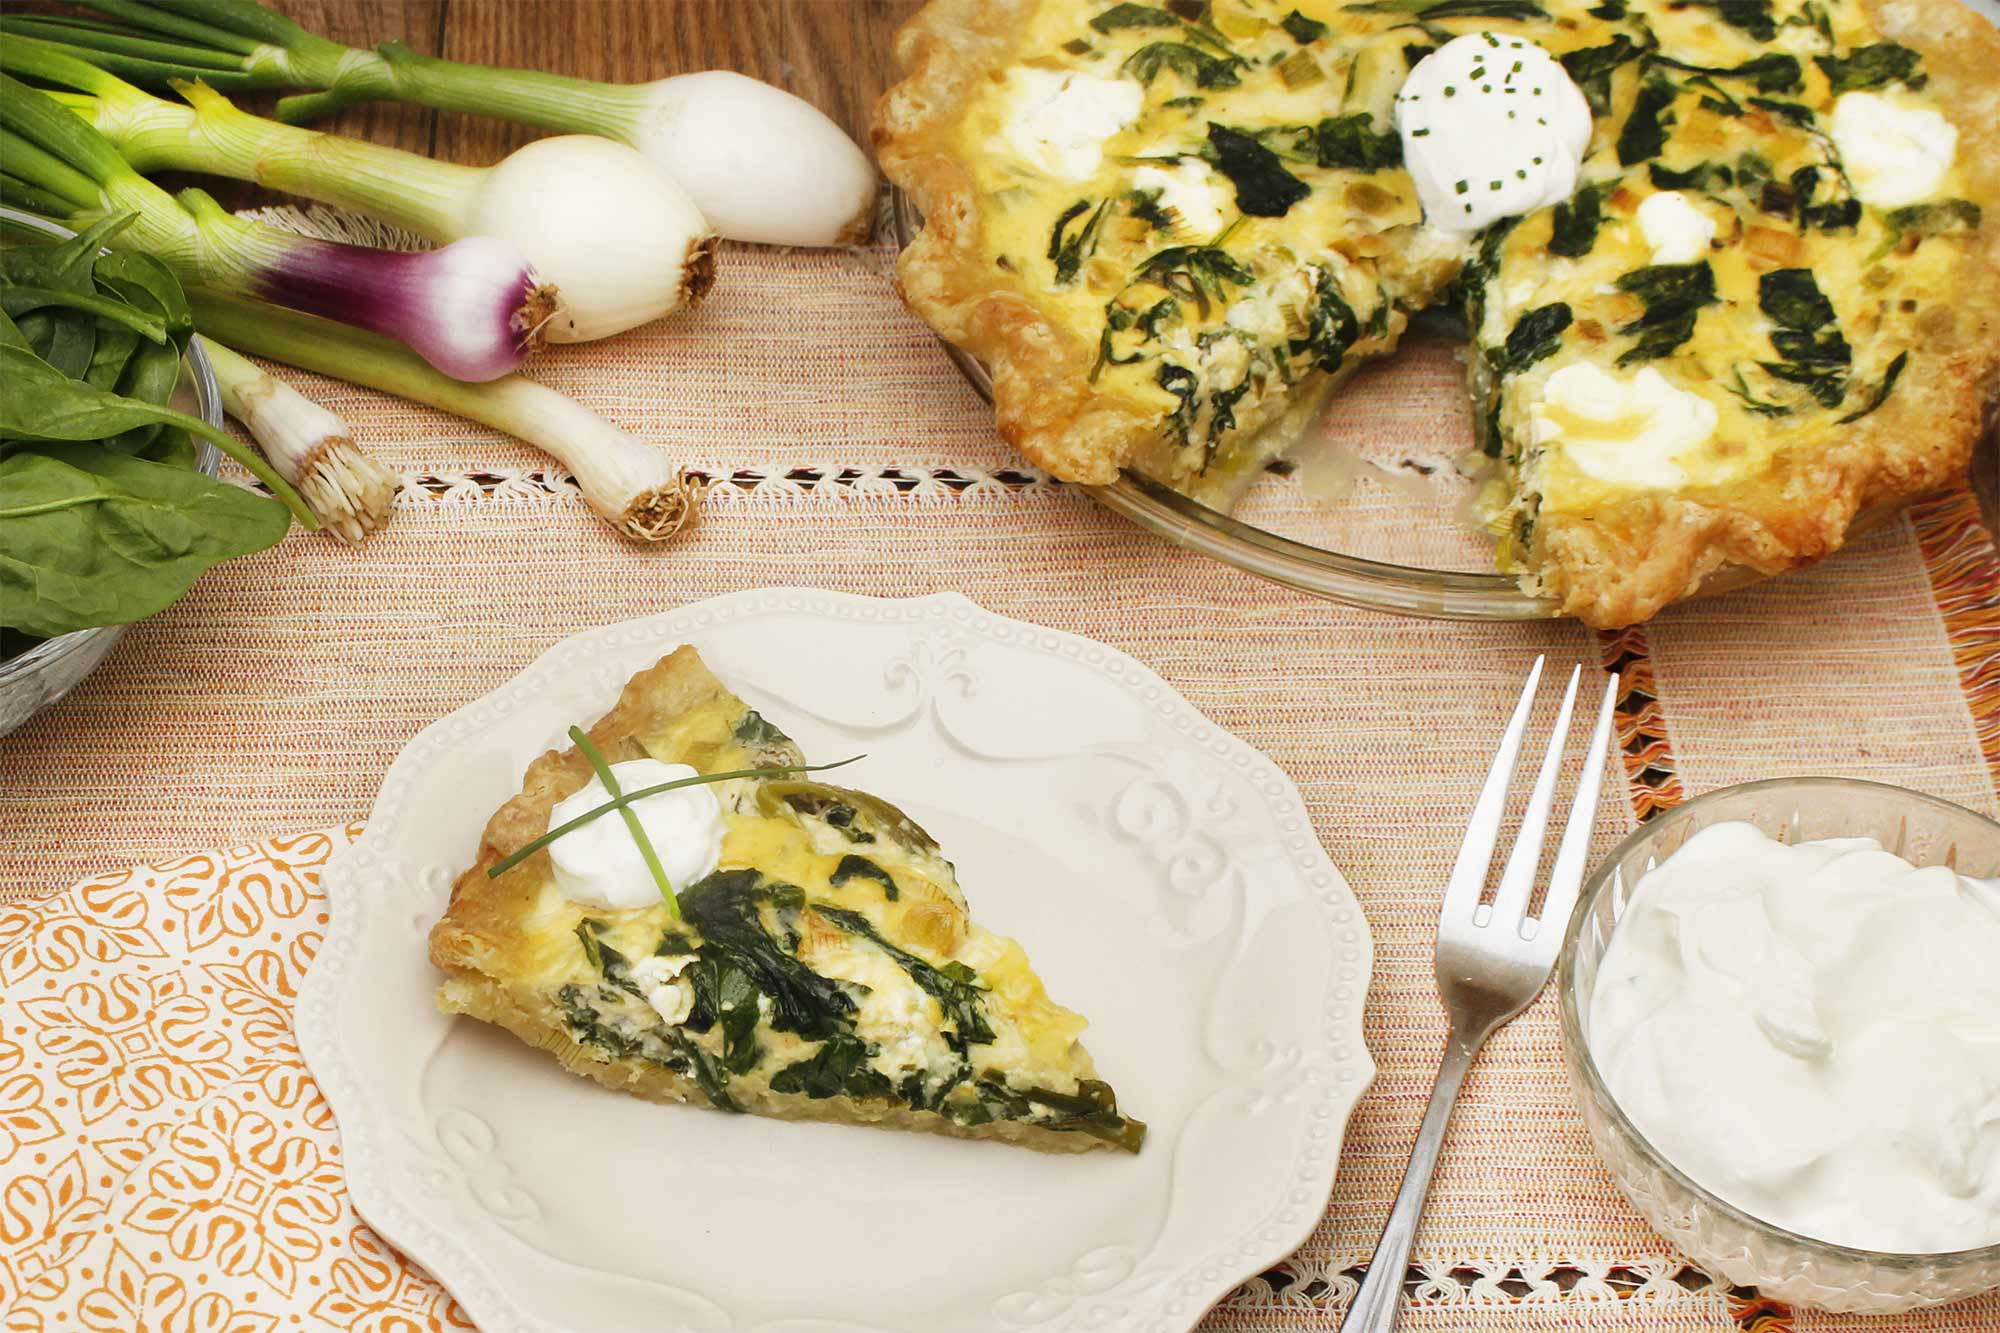 Spring Onion, Green Garlic and Spinach Quiche